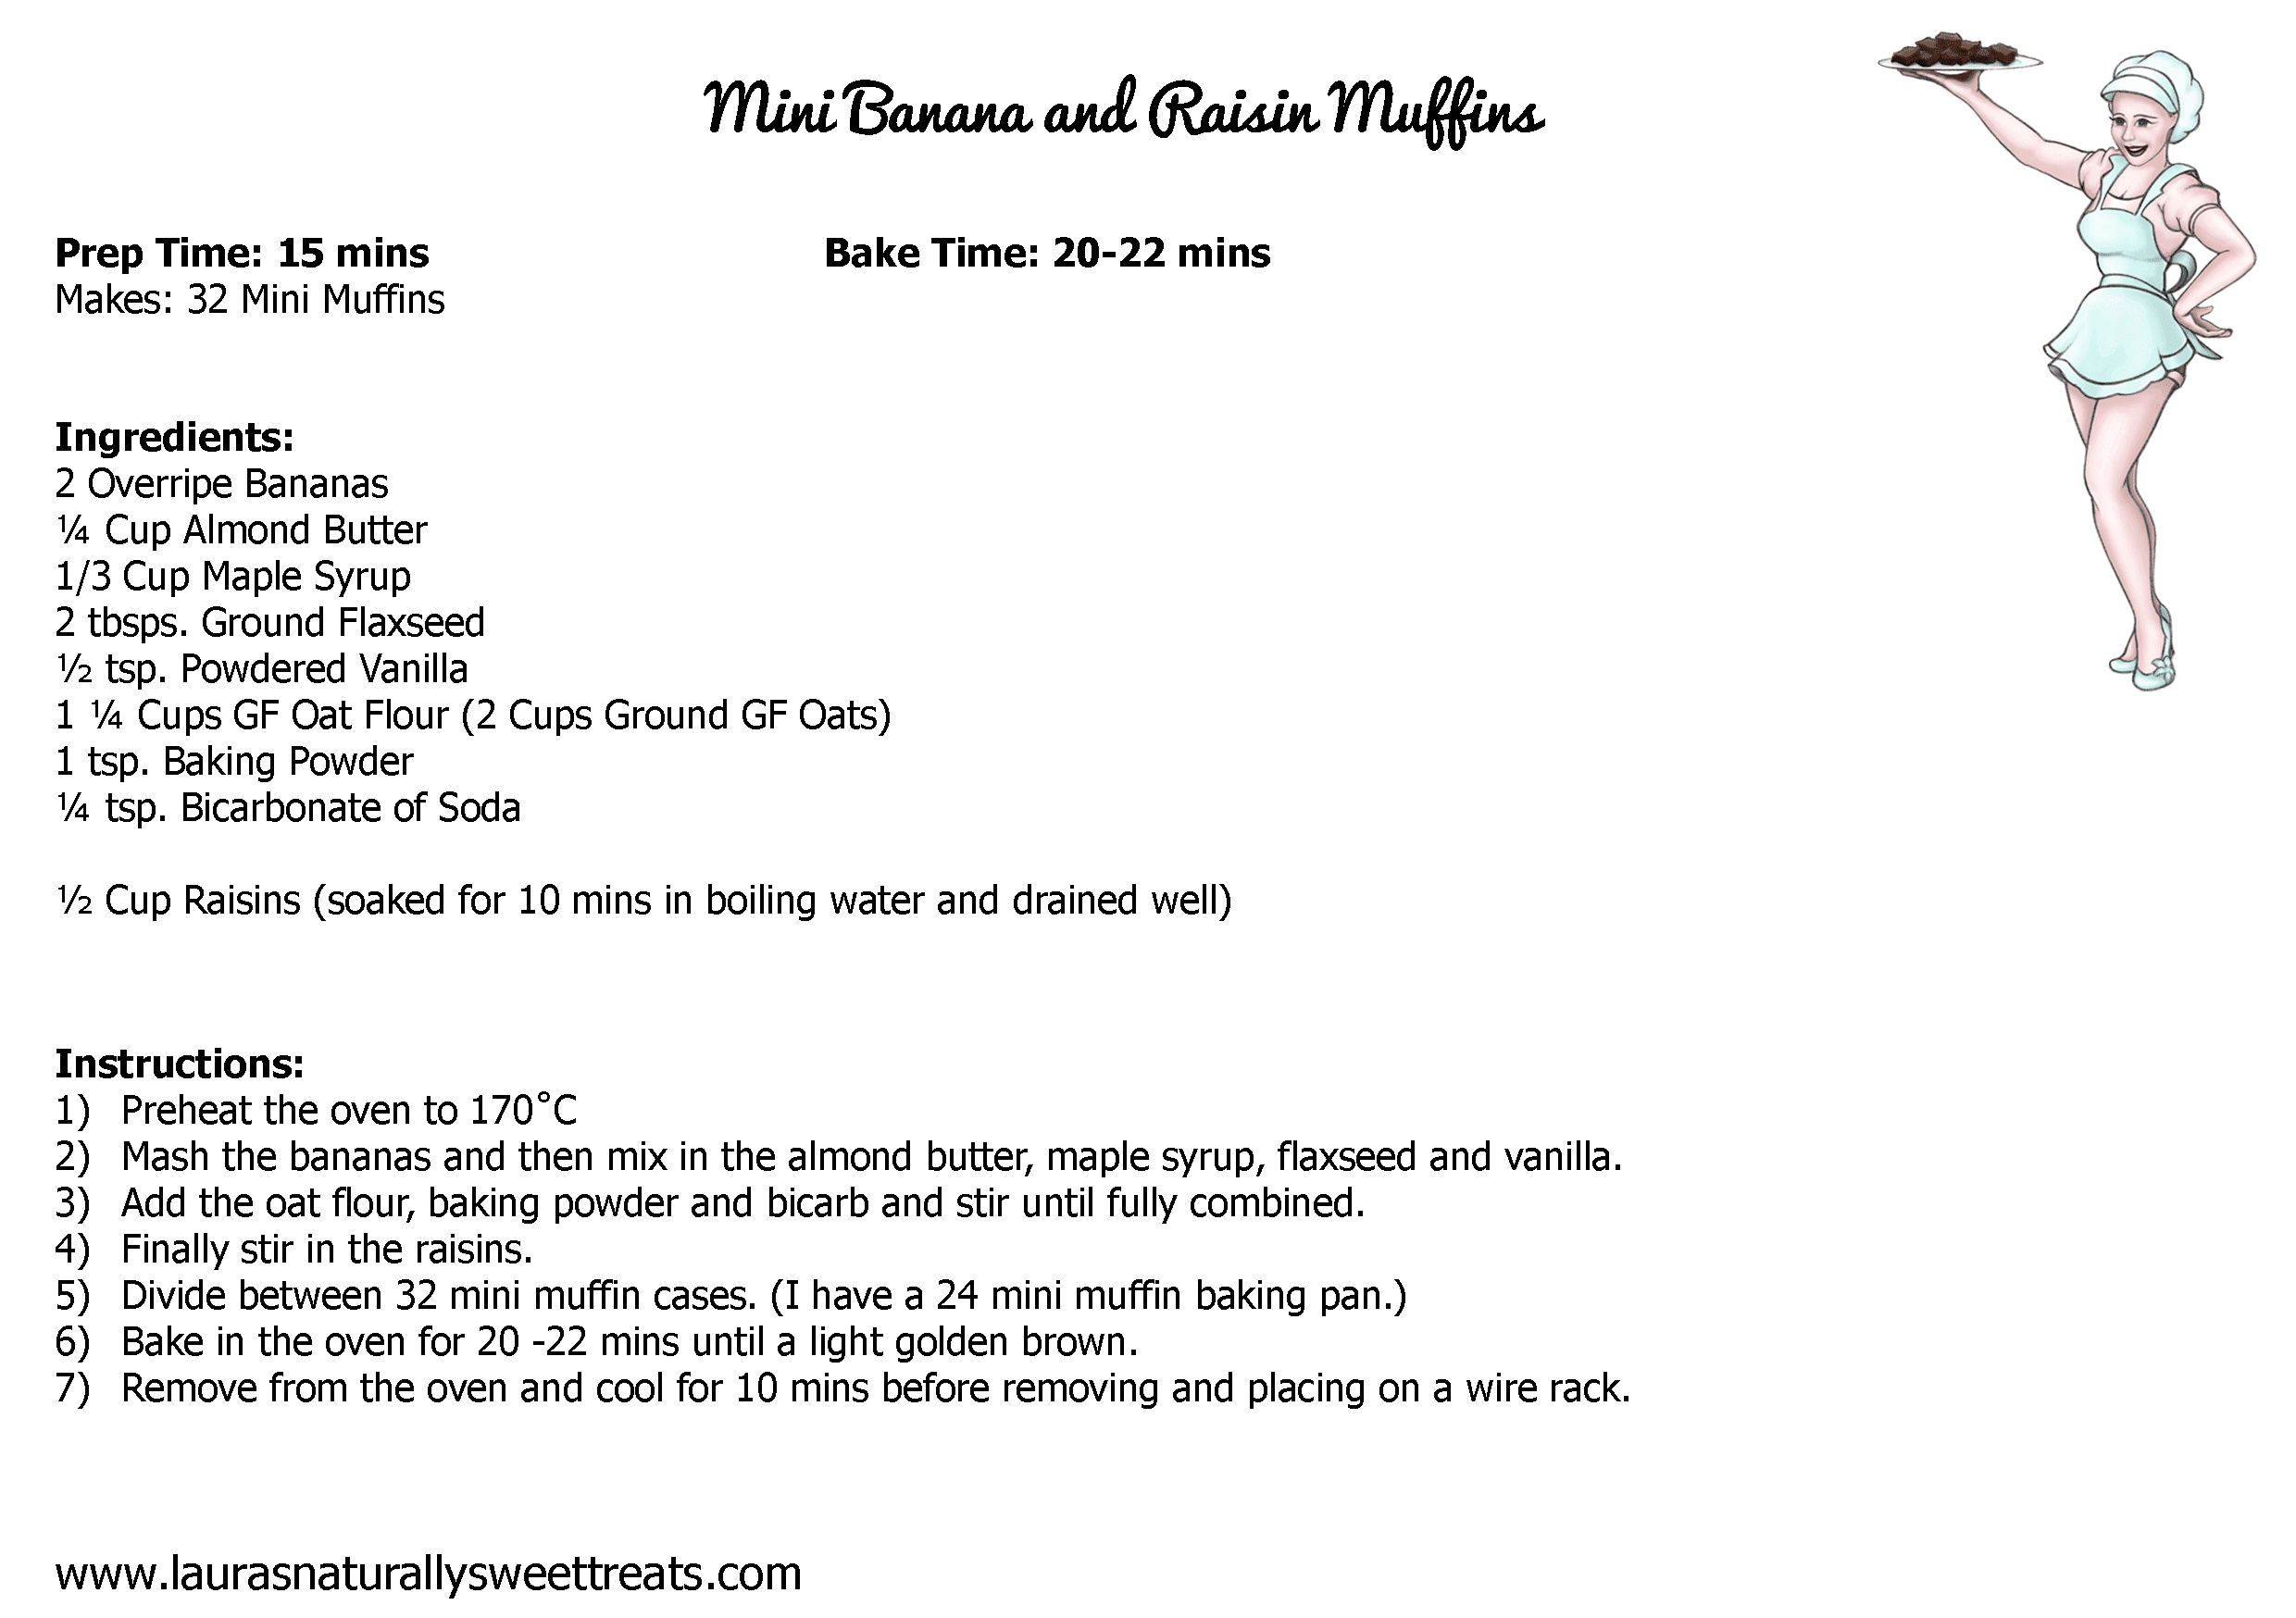 mini banana and raisin muffins recipe card